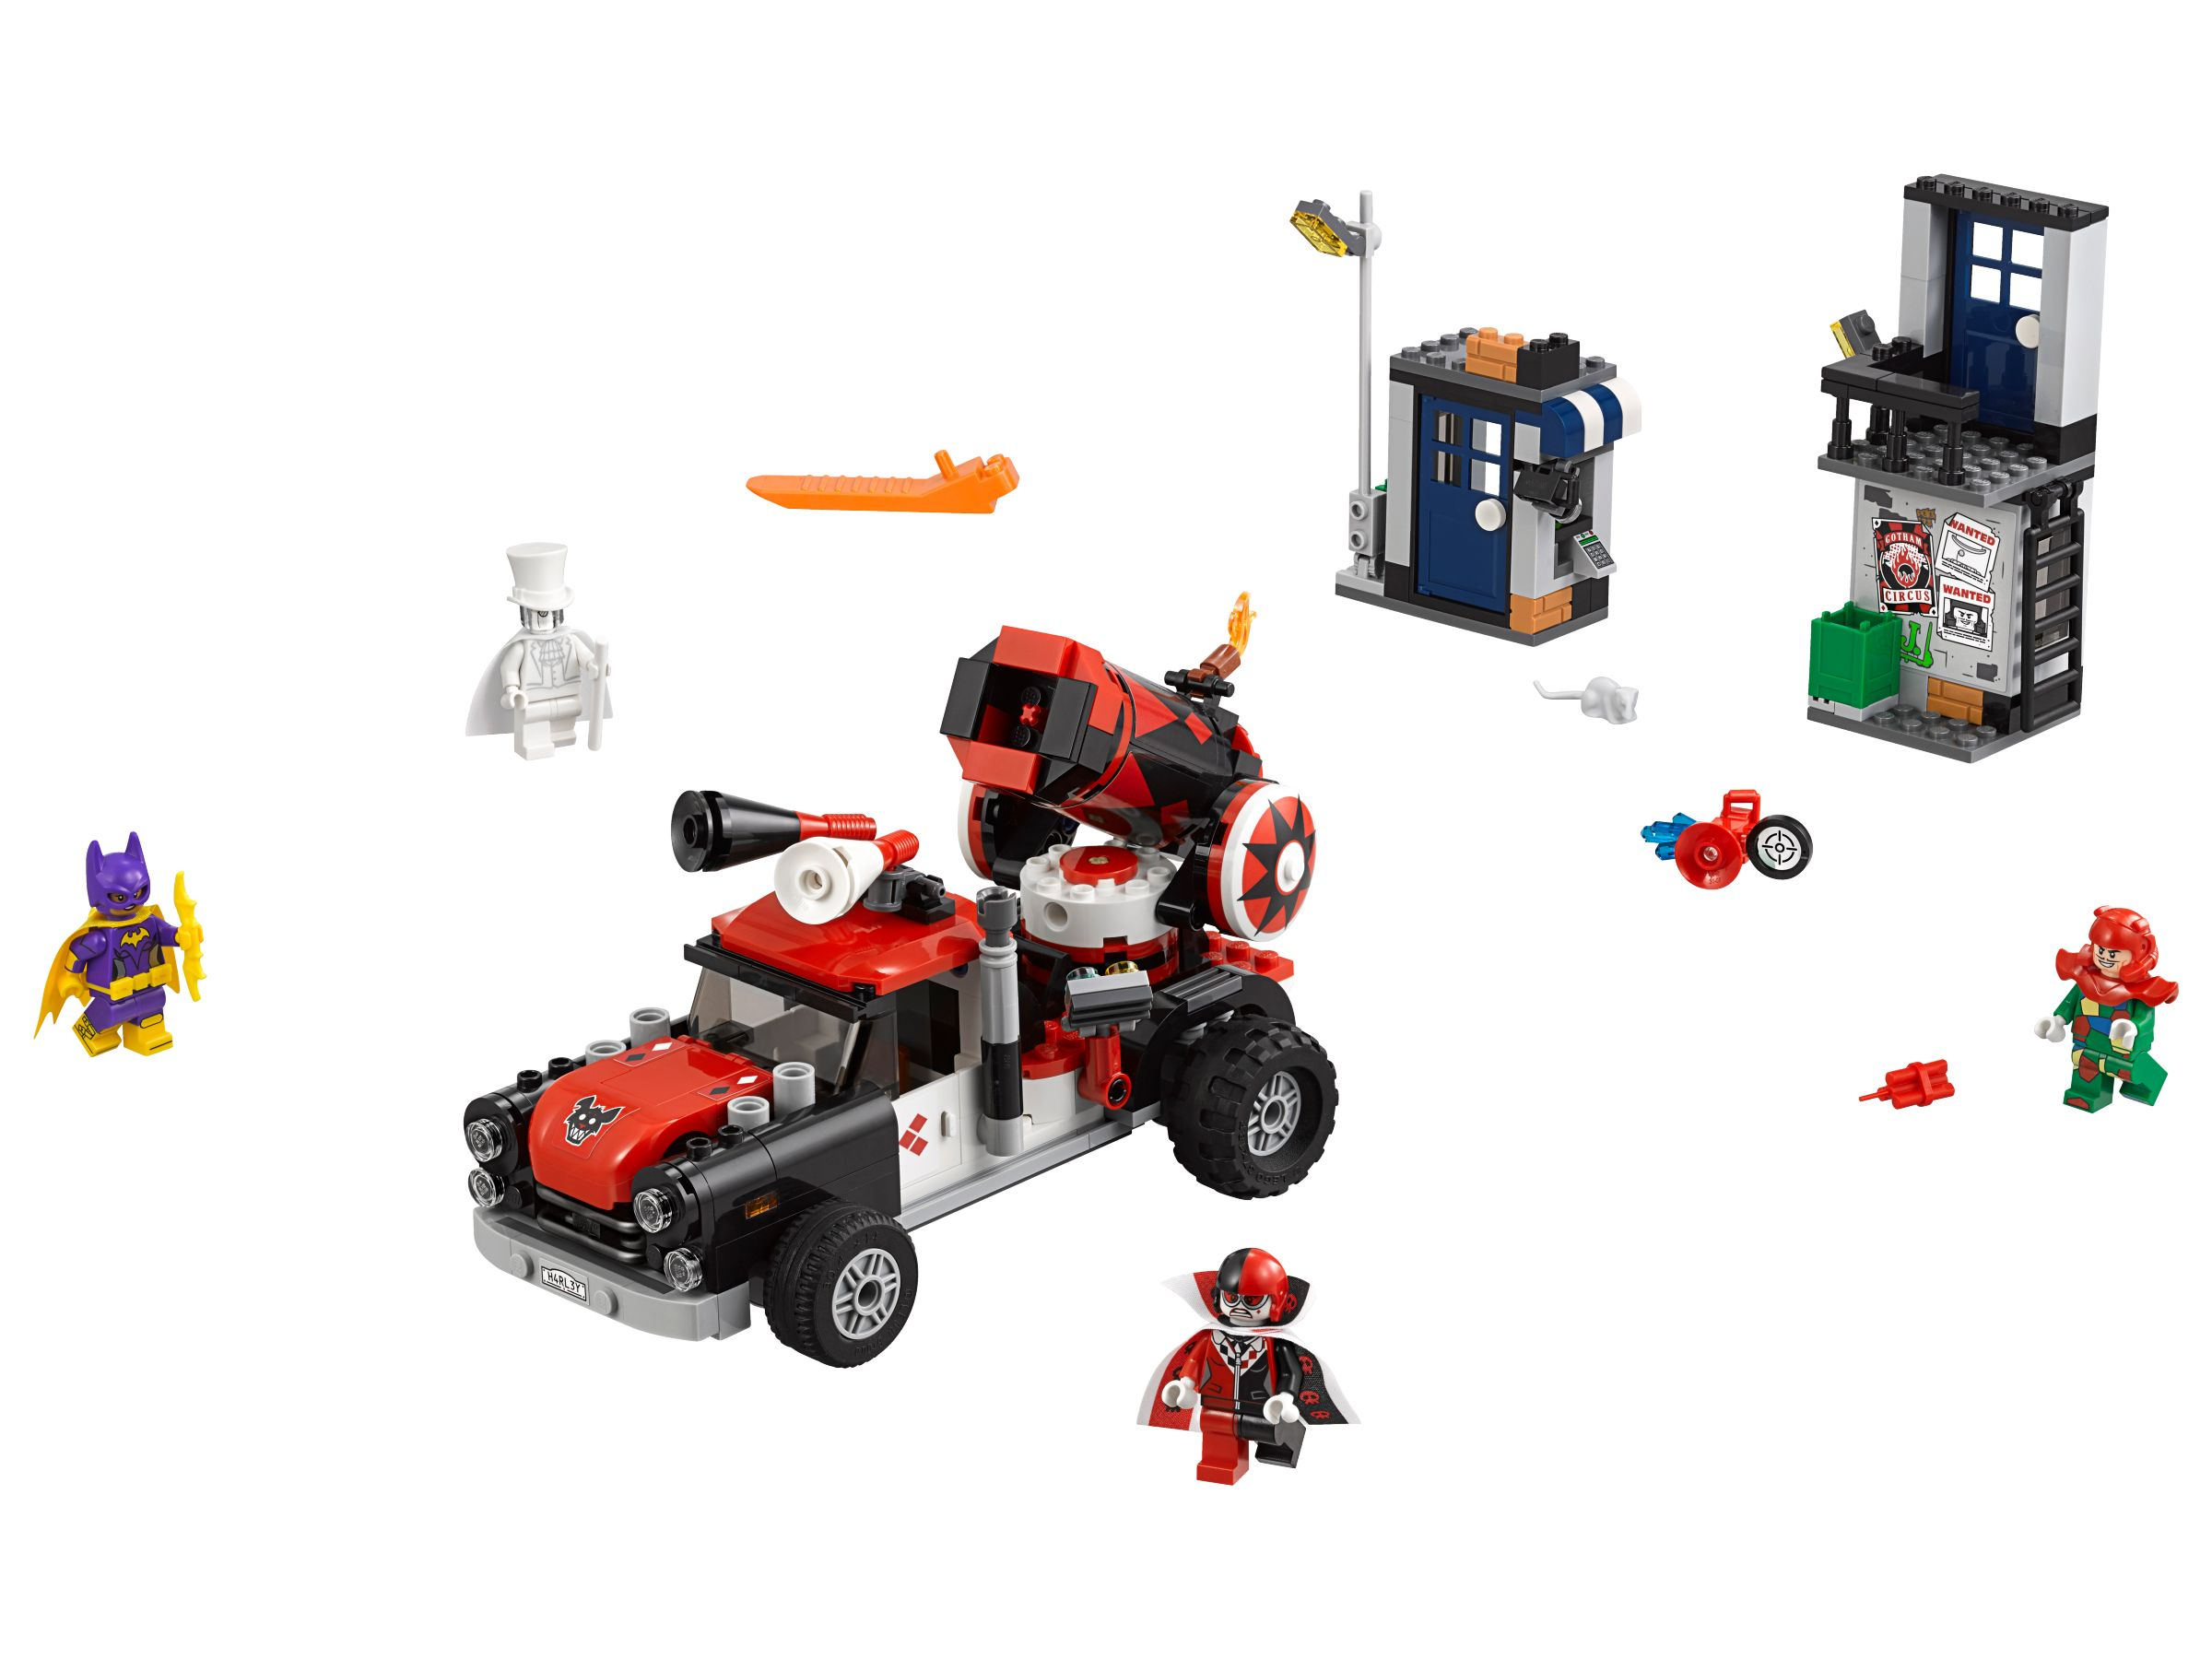 LEGO The LEGO Batman Movie 70921 Harley Quinn Kanonenkugelattacke LEGO_70921.jpg